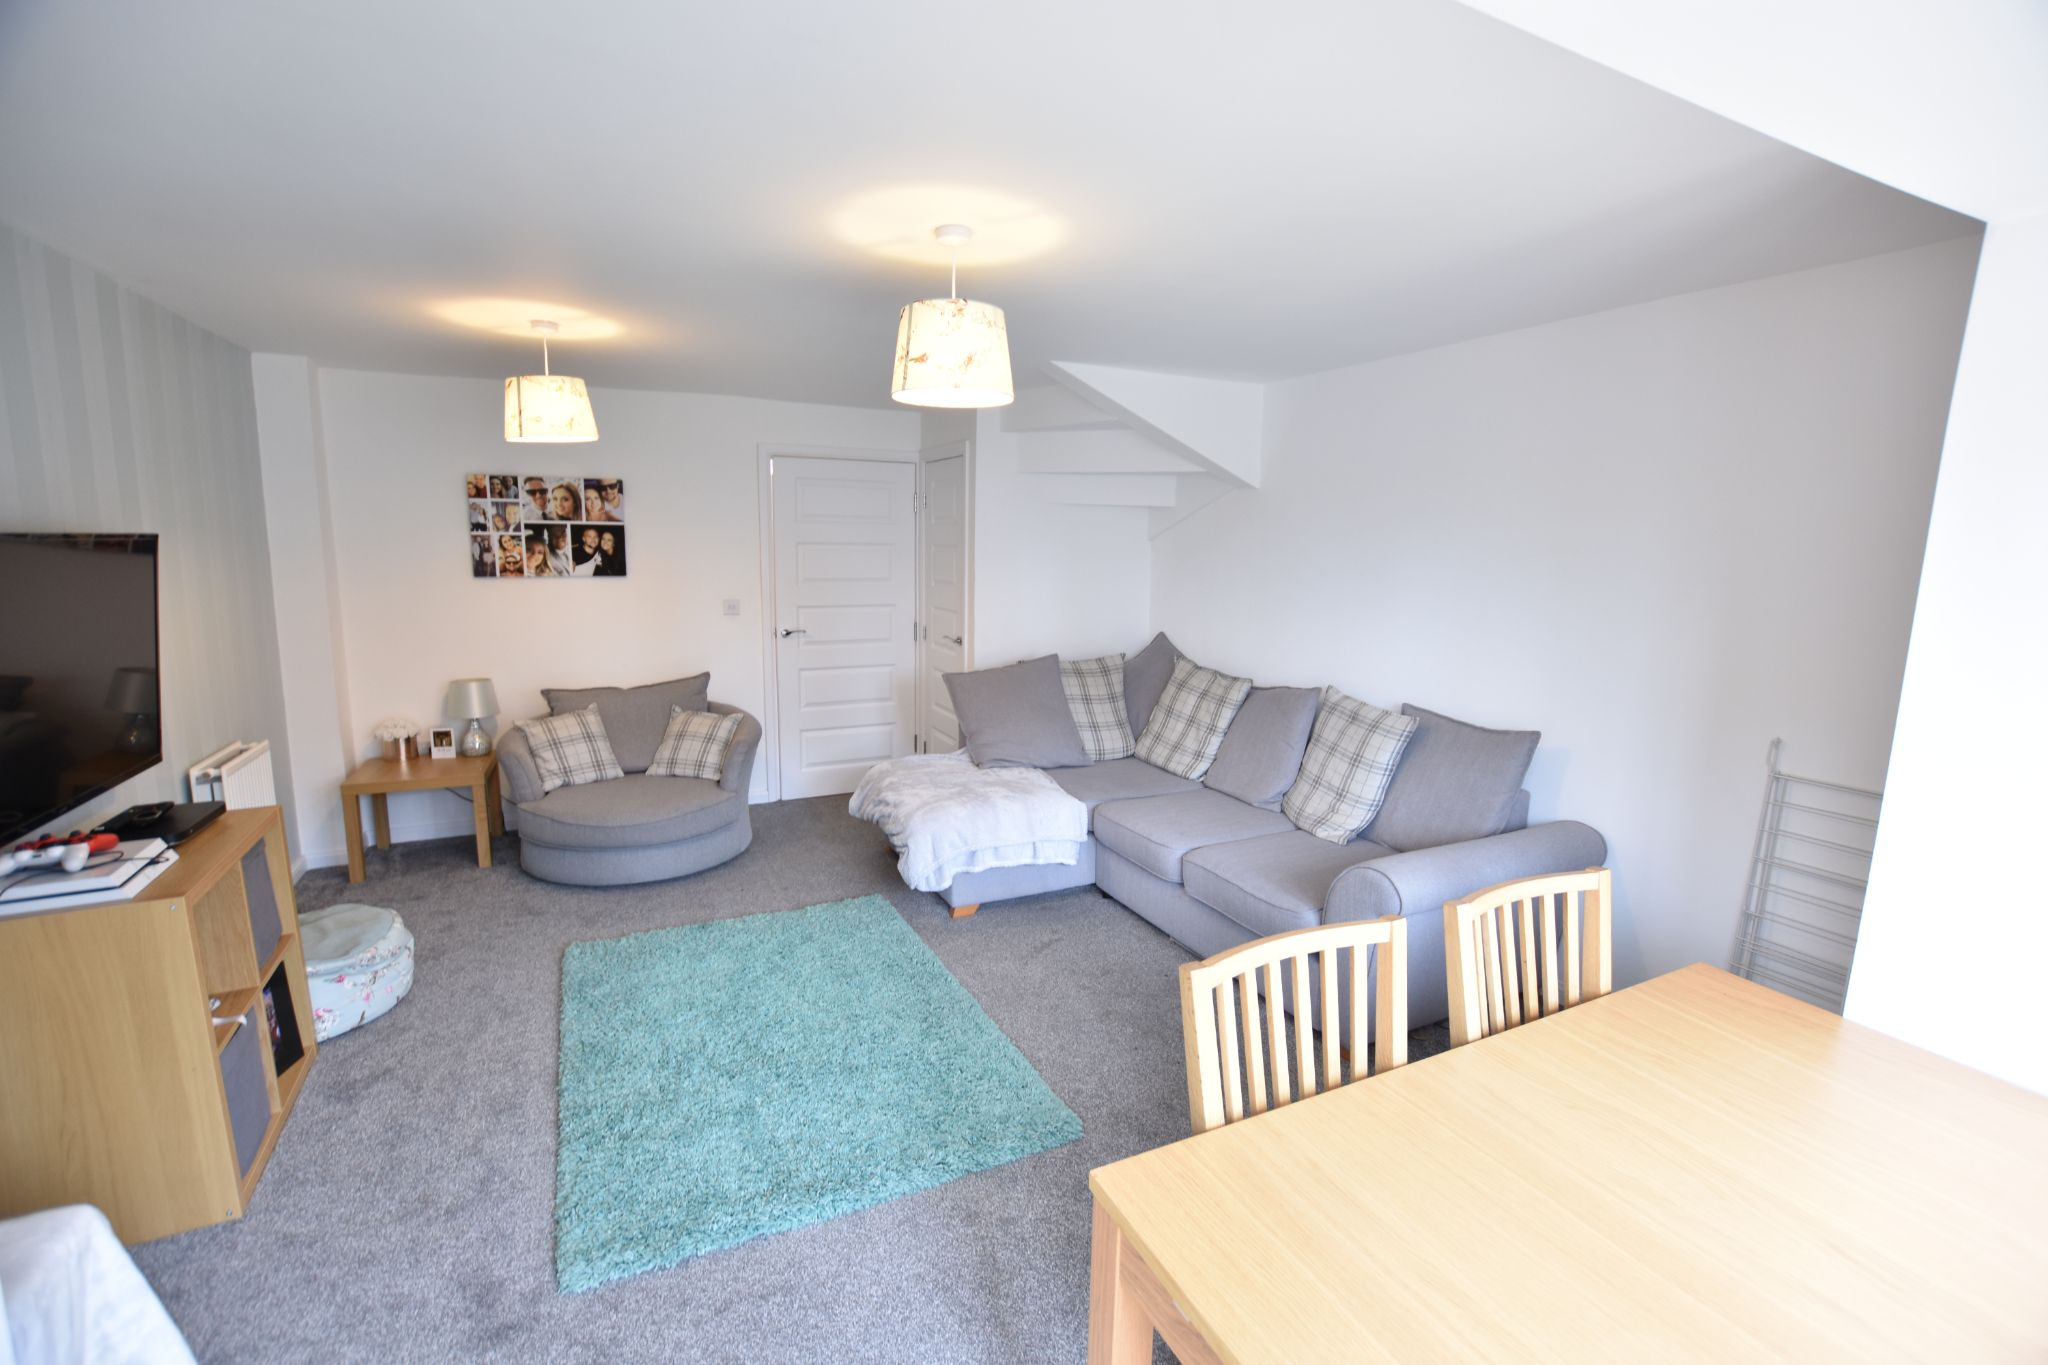 3 bedroom mid terraced house For Sale in Preston - Lounge